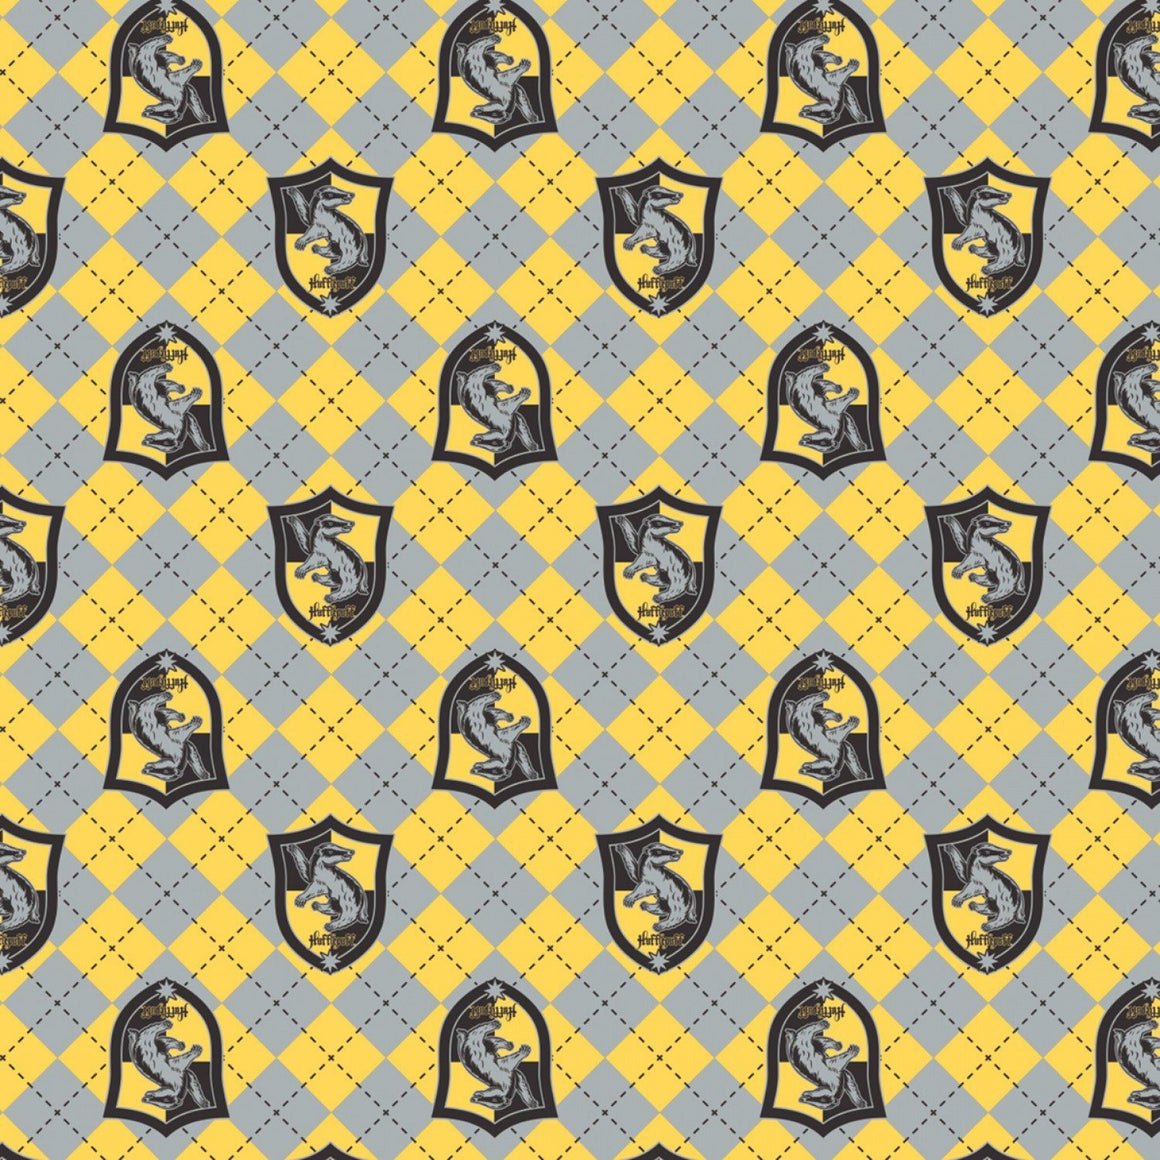 Yellow Grey and Black Hufflepuff Crest Harry Potter Argyle Flannel - Raspberry Creek Fabrics